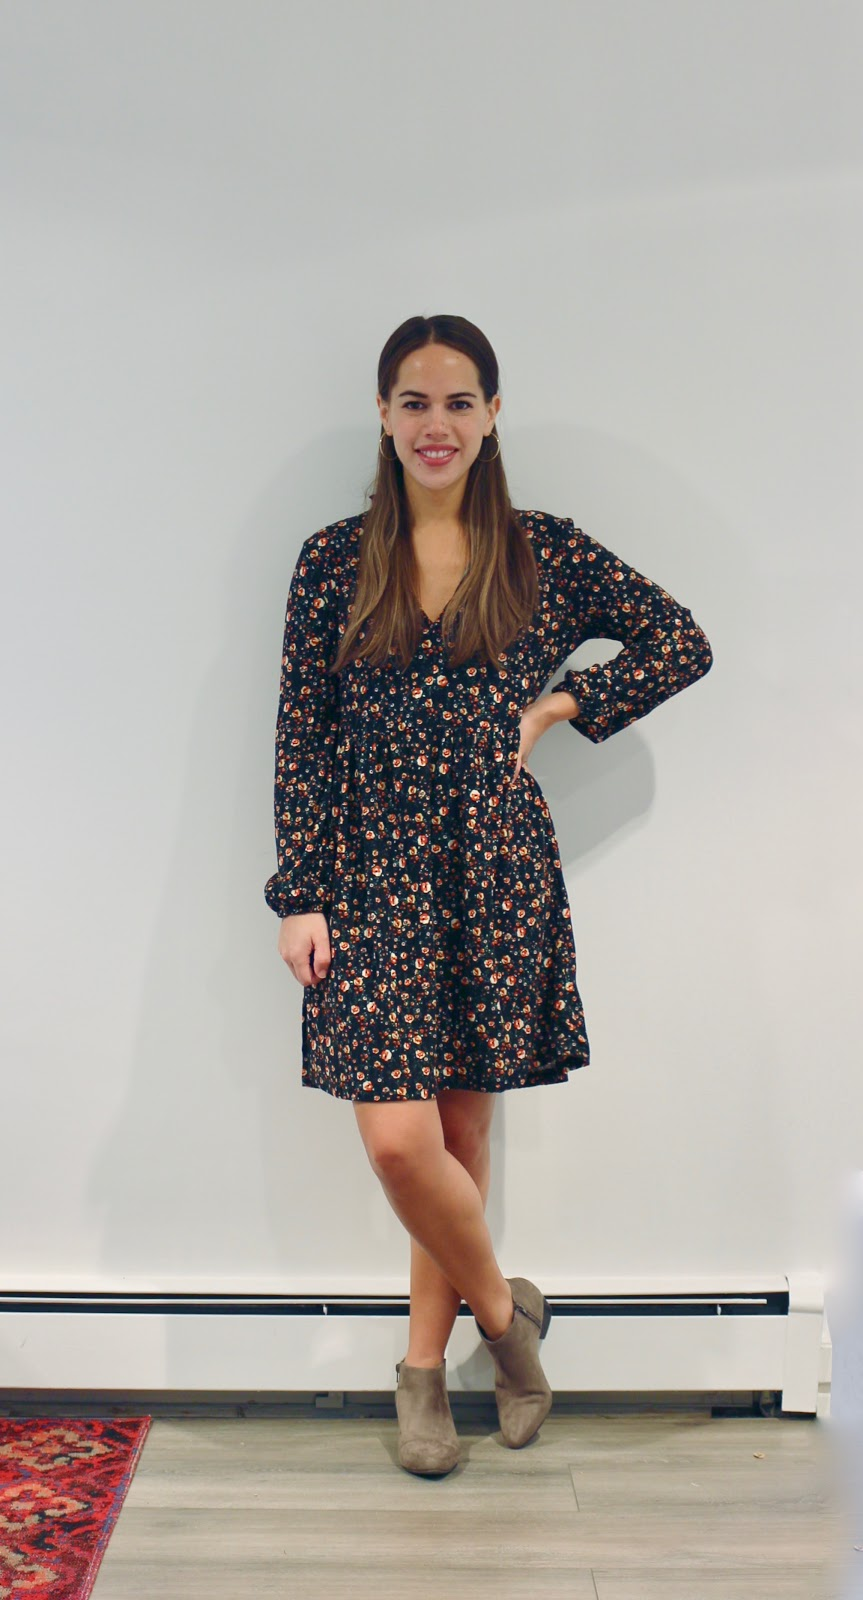 Jules in Flats - Zara Floral Mini Dress (Business Casual Fall Workwear on a Budget)